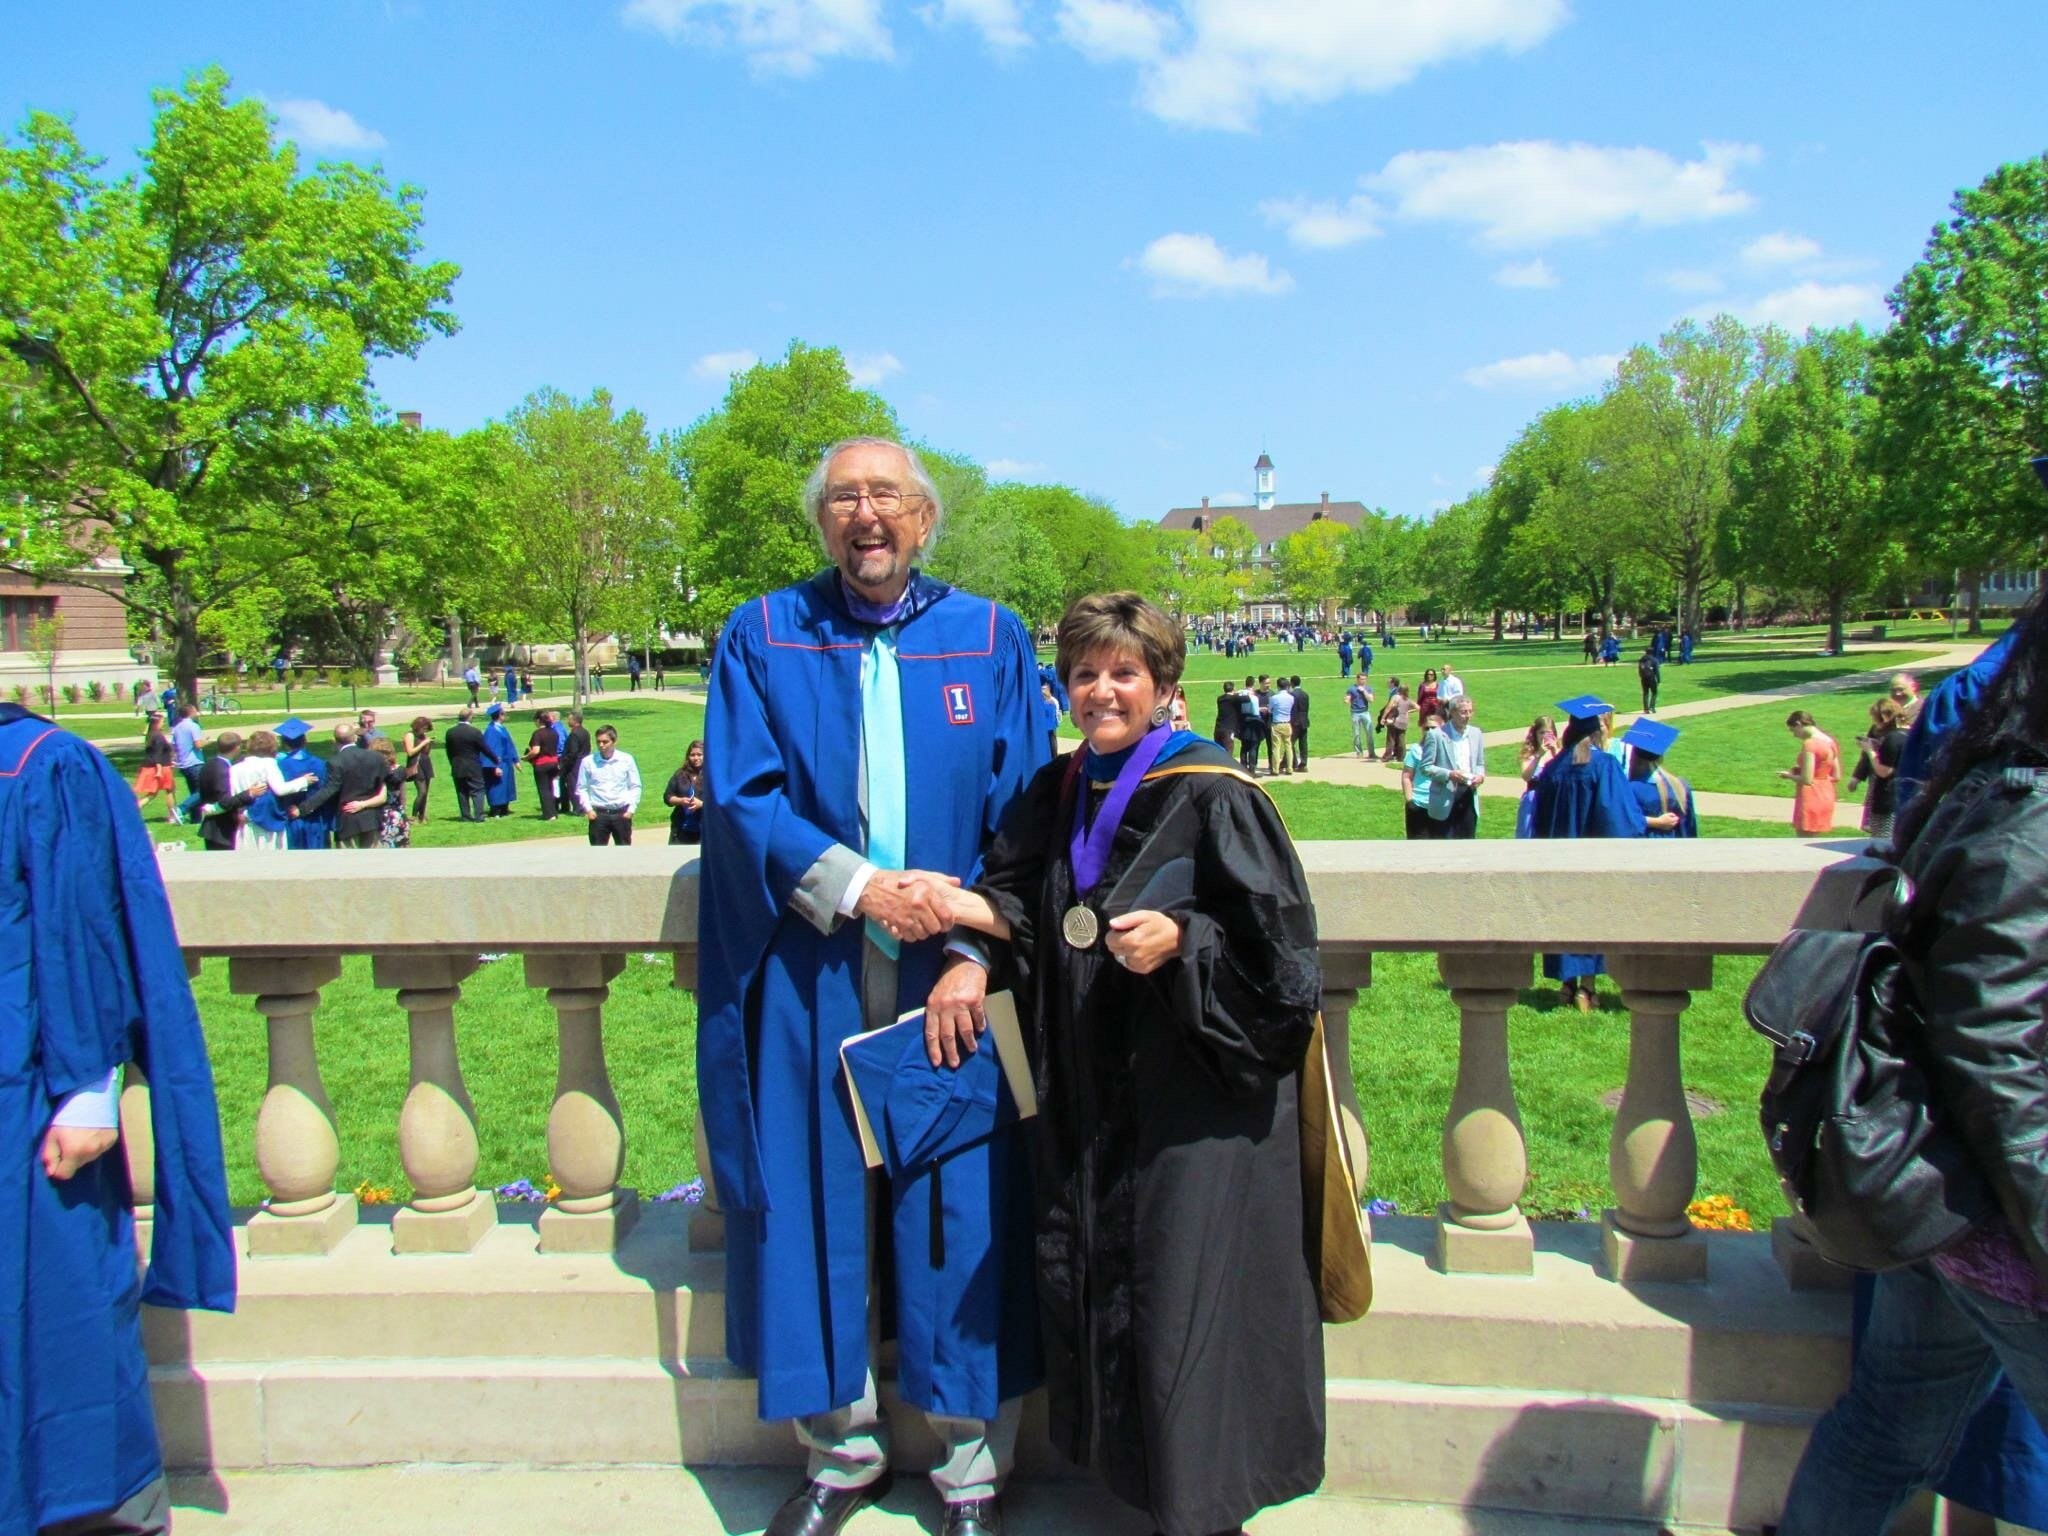 César Pelli and Kathryn Anthony at the 2014 University of Illinois commencement ceremony.